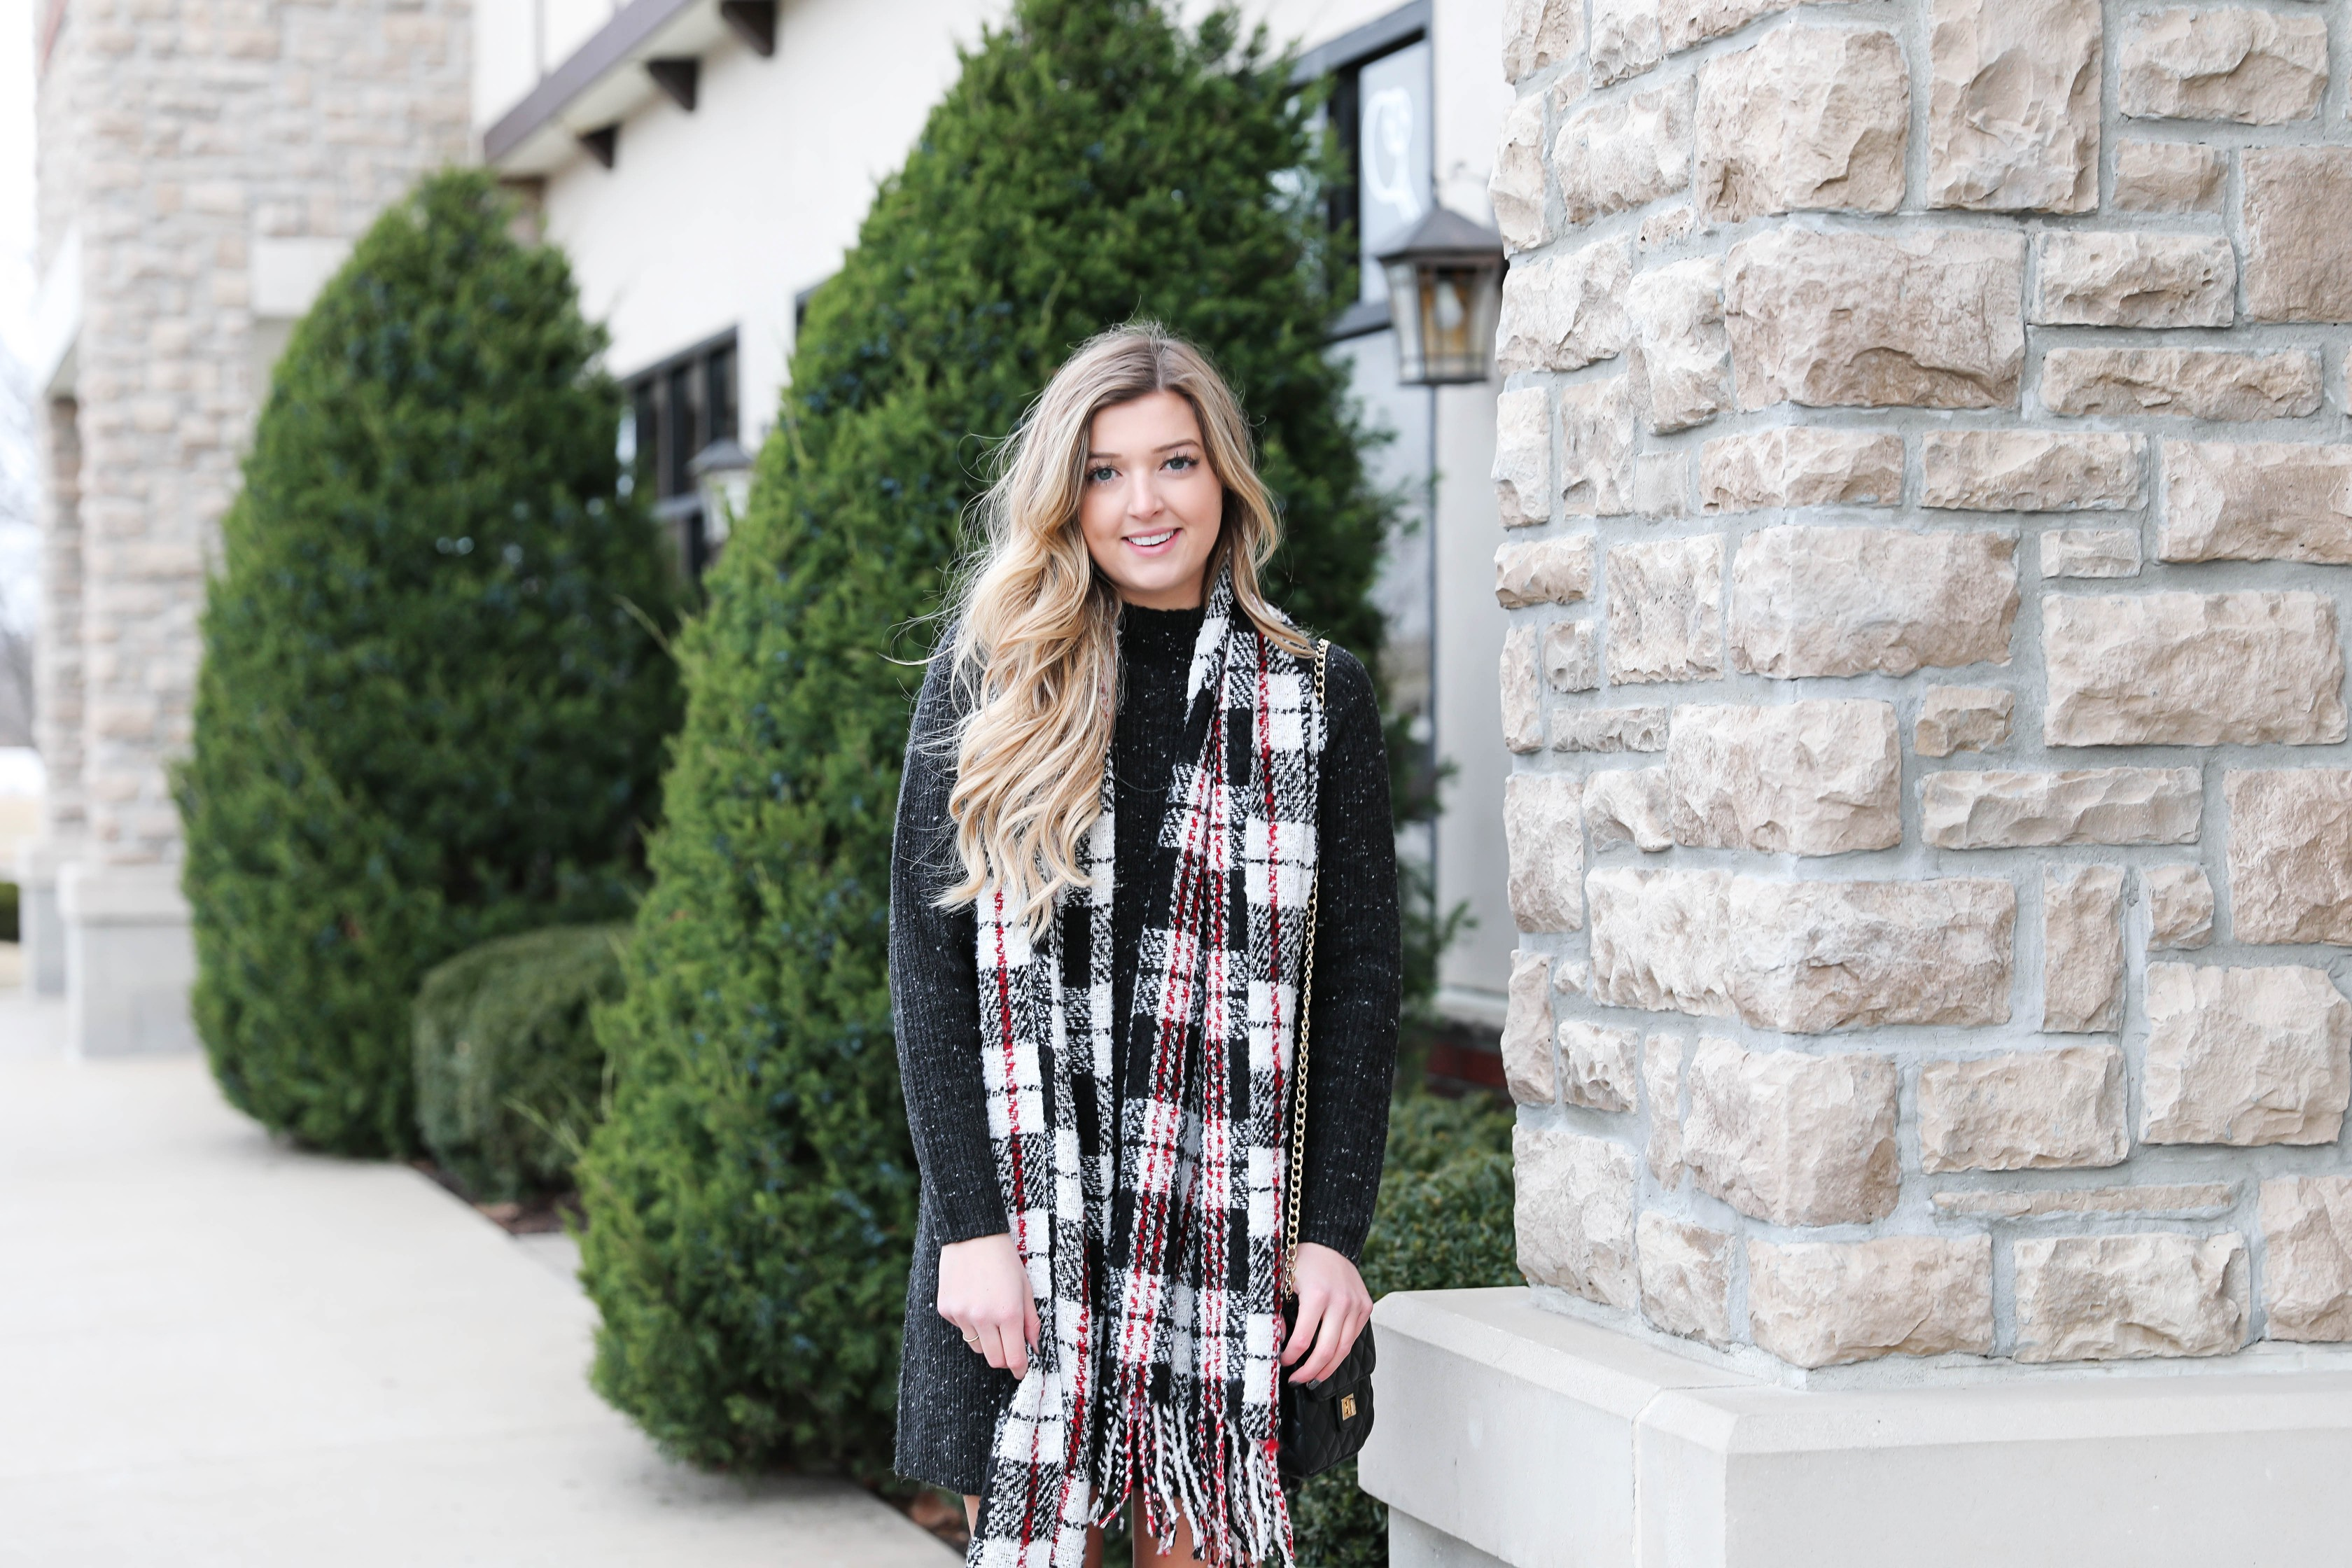 Black sweater dress paired with the cutest red plaid scarf and my favorite black over the knee boots! Cutest curly hair and winter outfit! Details on fashion blog daily dose of charm by lauren lindmark